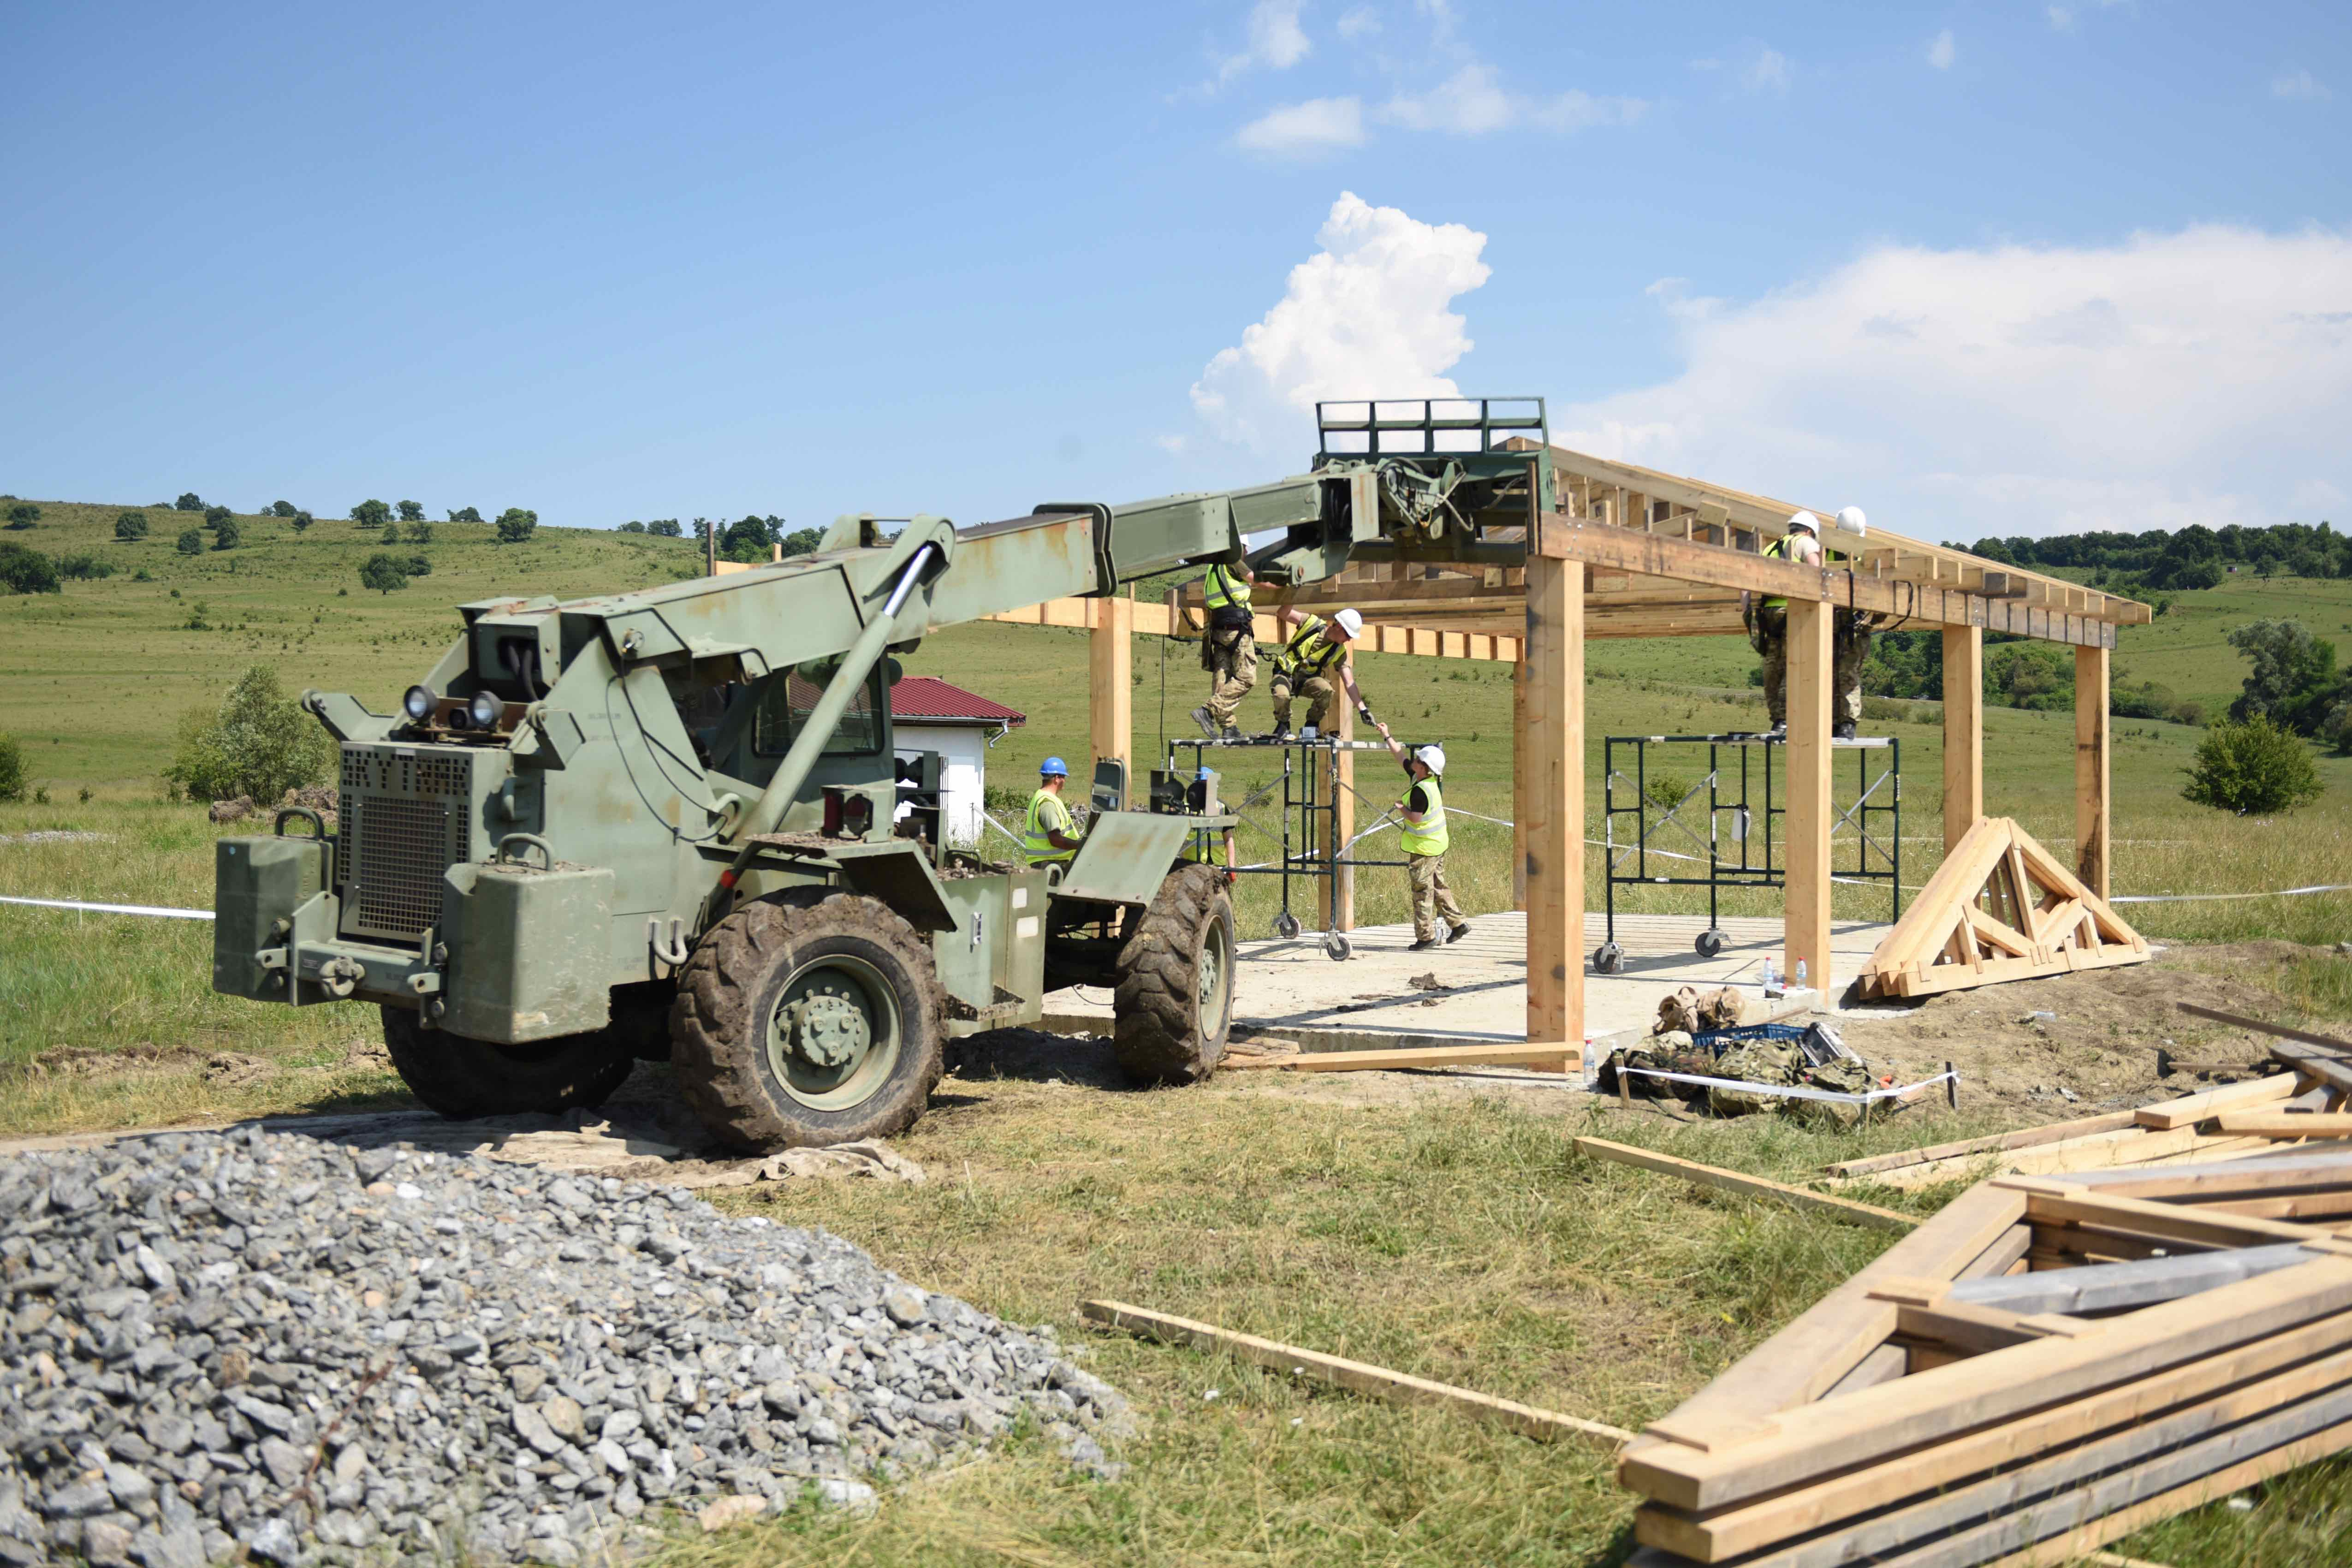 The multipurpose shelter, which was almost fully constructed by July 14, is being assembled by soldiers from the U.K. and Romania. British soldiers specialized in building structures during Resolute Castle. Building training ranges on the Romanian site will have a lasting impact, by providing both new state-of-the-art facilities as well as training experiences for engineers assigned to the building. (Jen Judson/Staff)